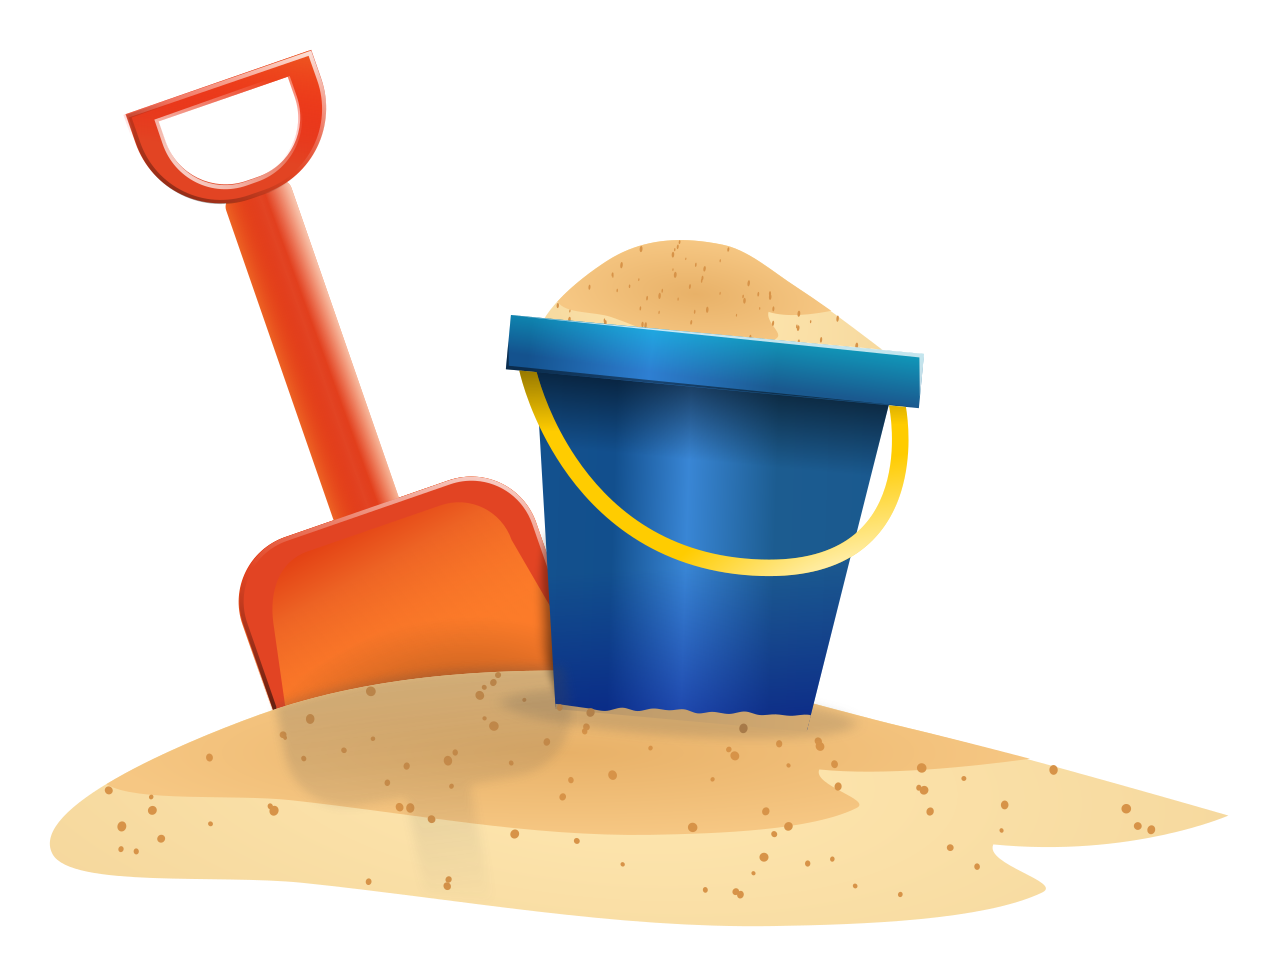 file sandbox openclipart svg wikipedia #31469